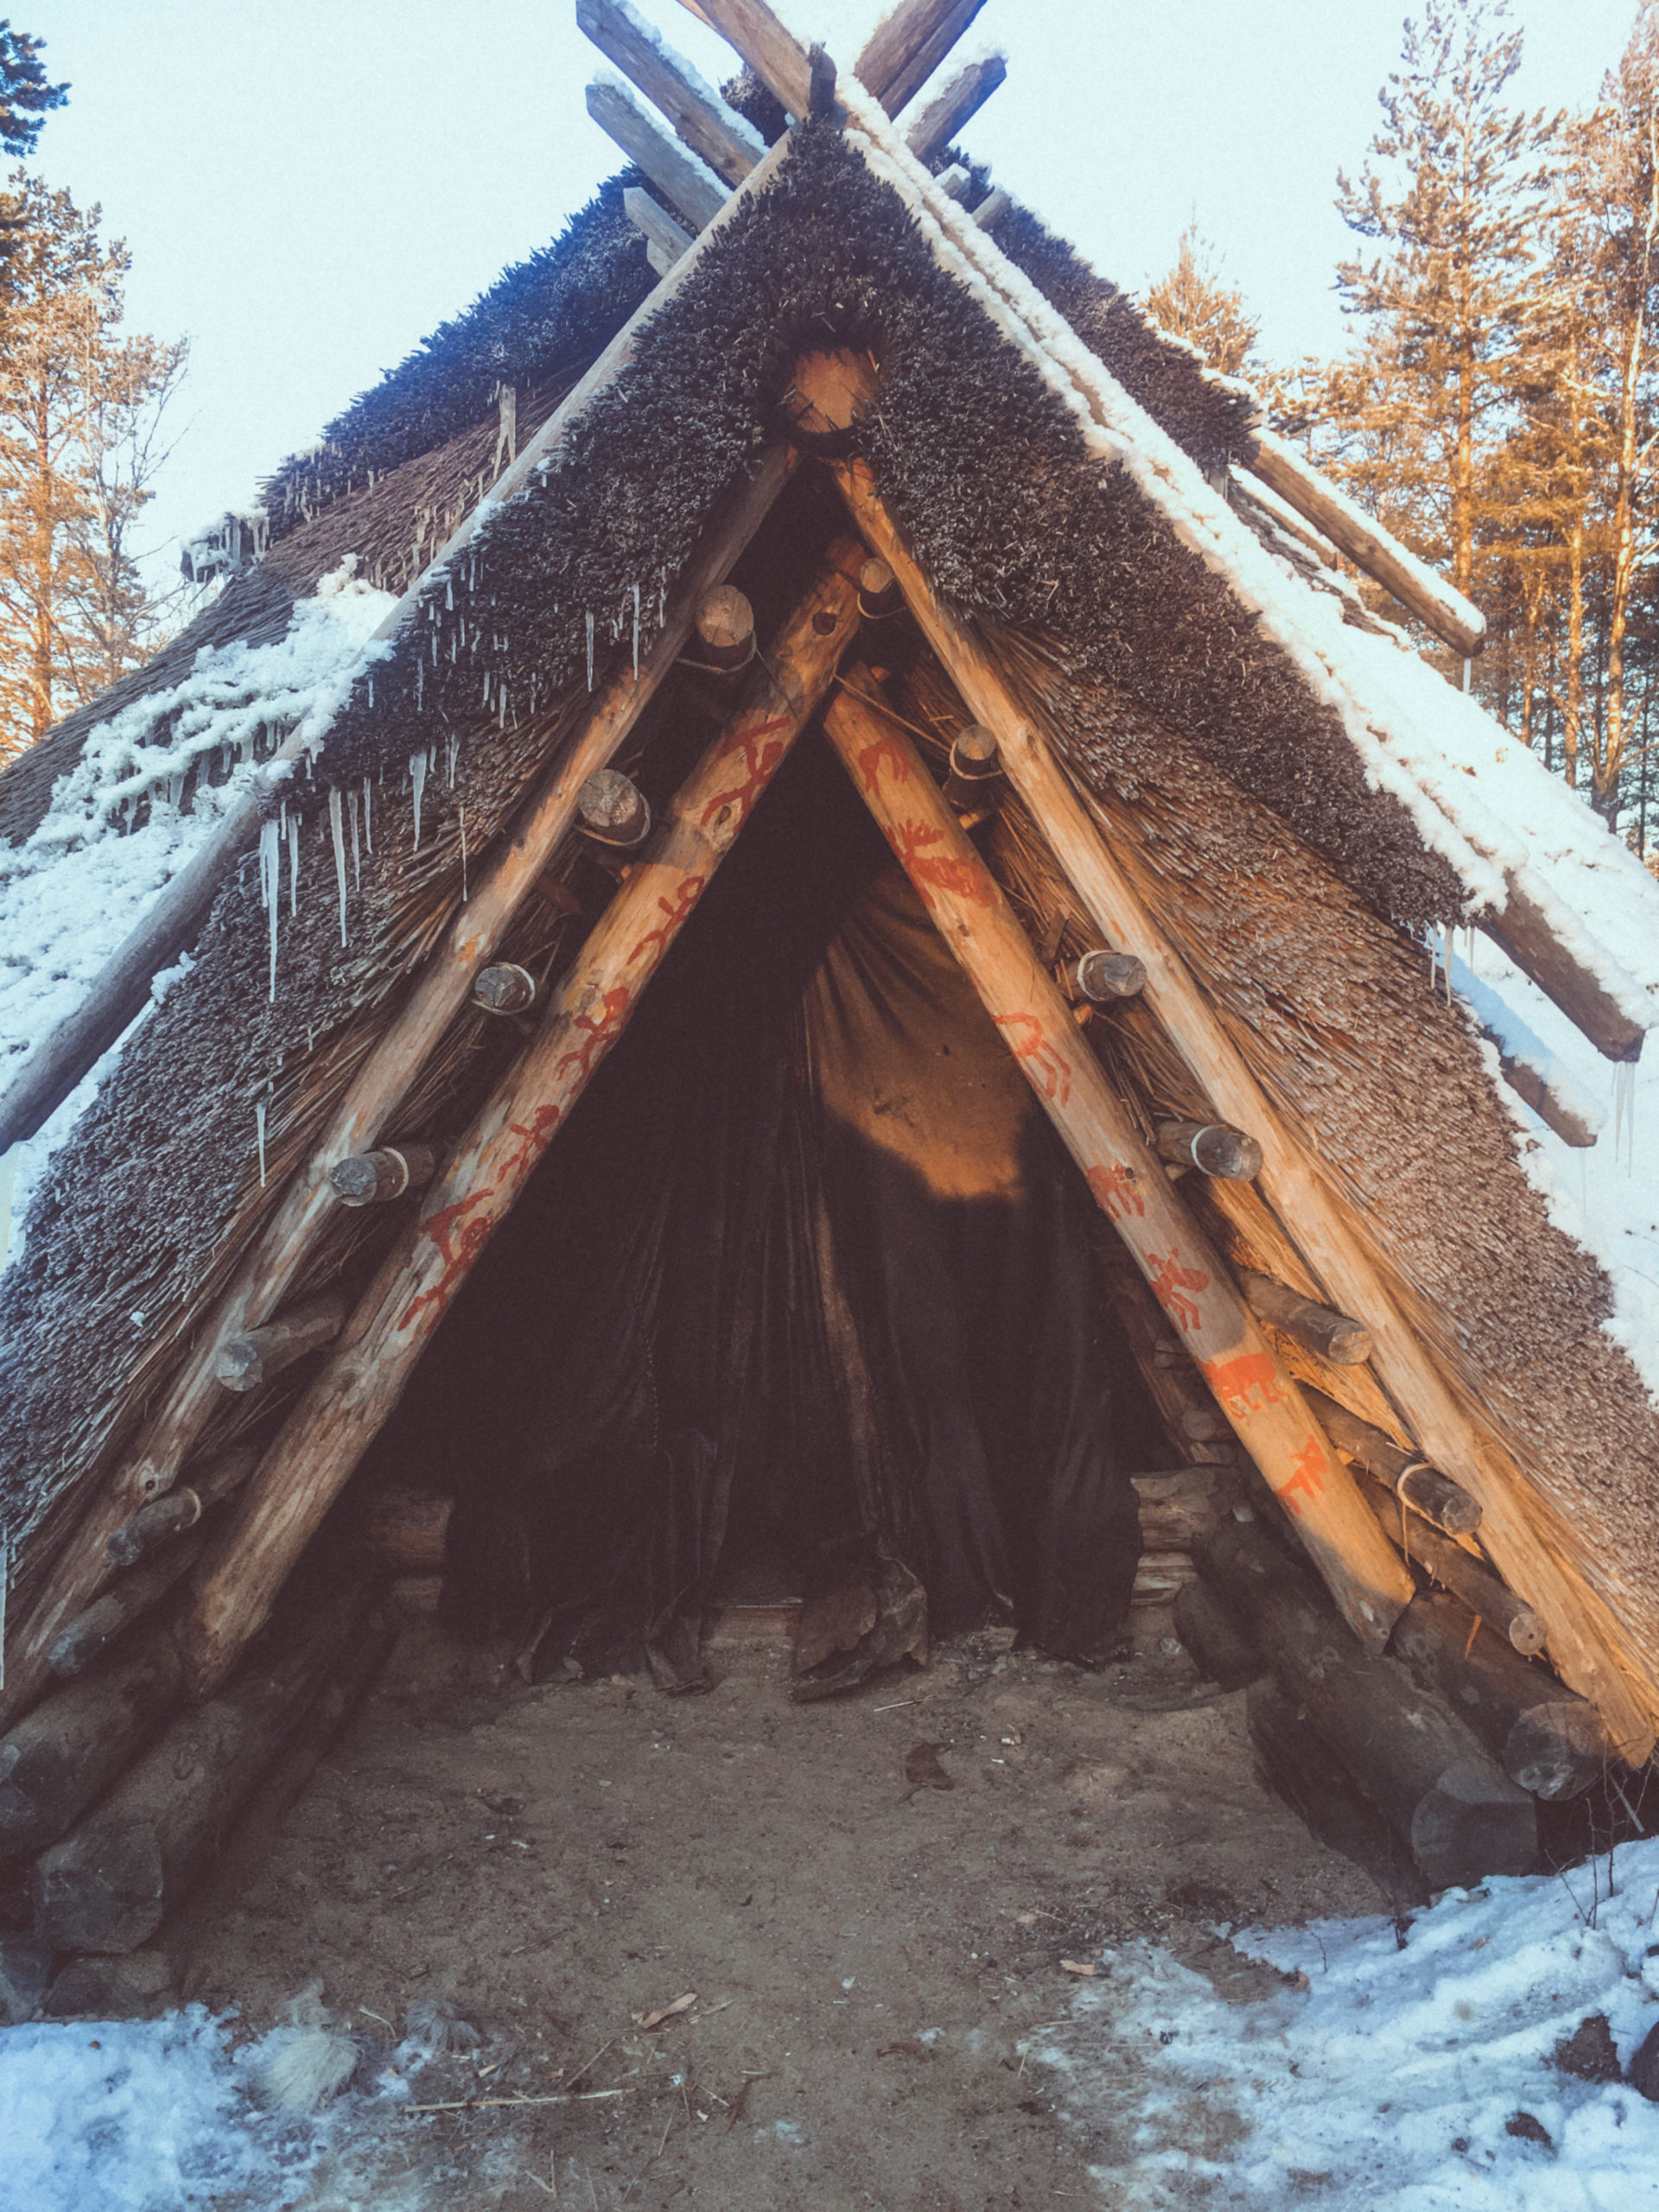 stone age home made of wood and reeds, covered in snow and with the forest in the background